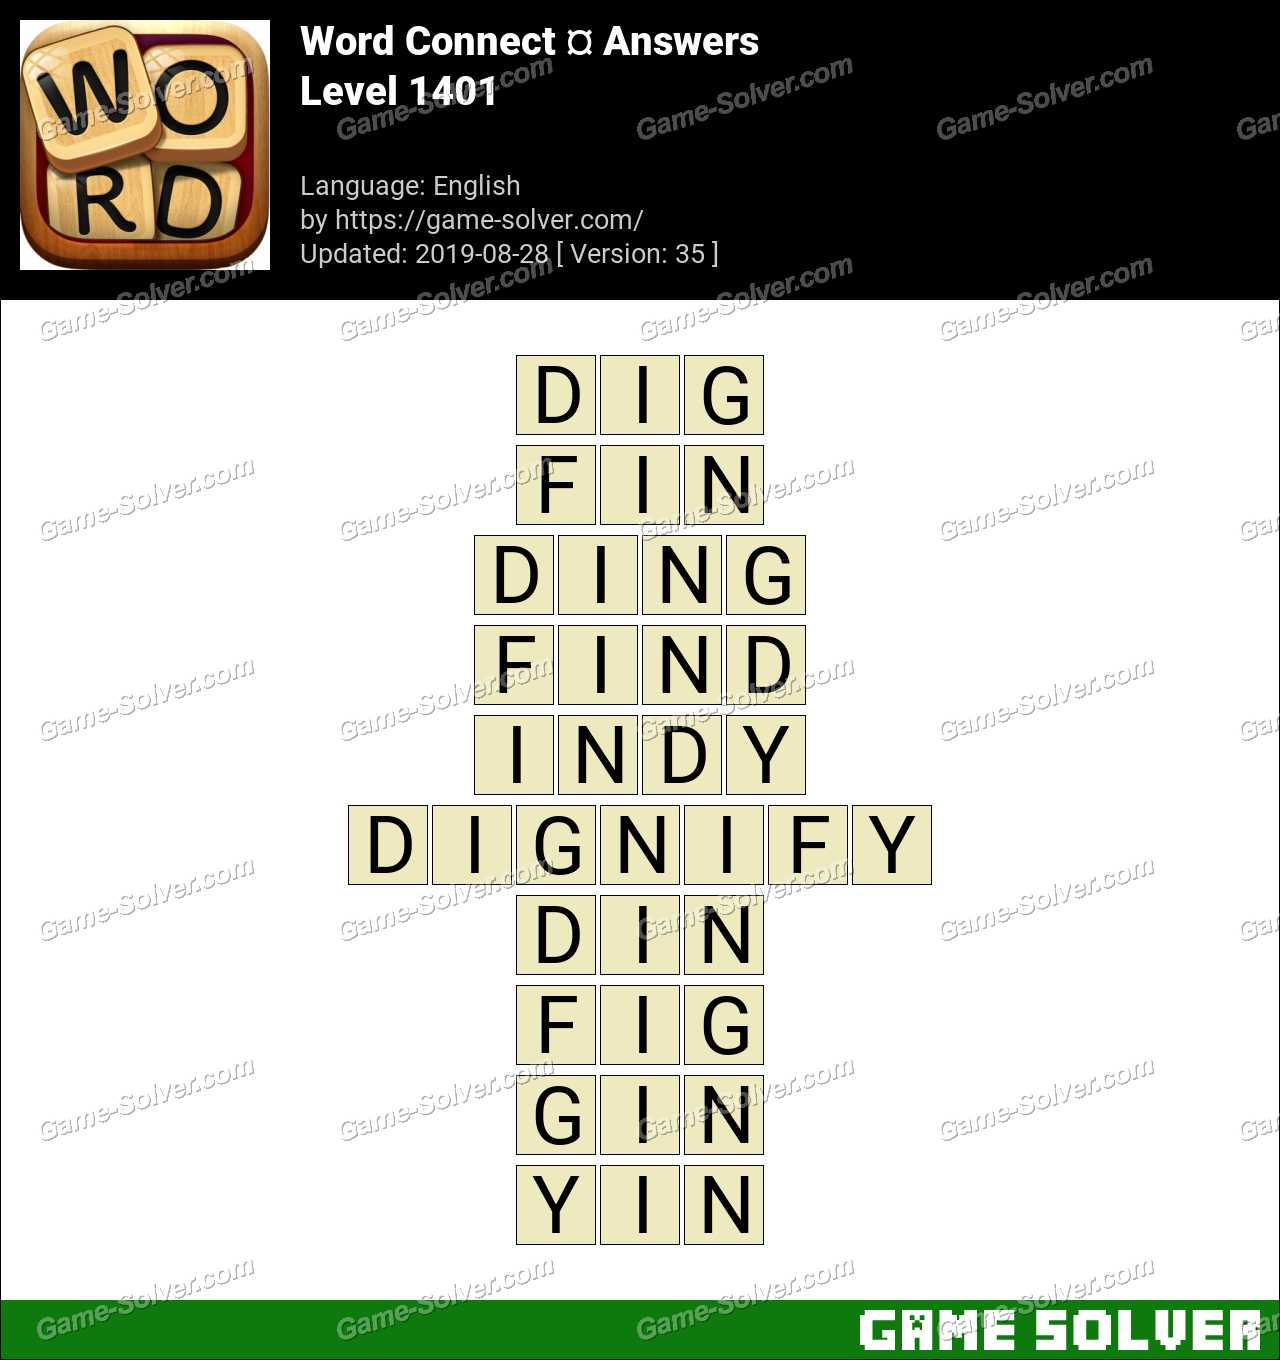 Word Connect Level 1401 Answers